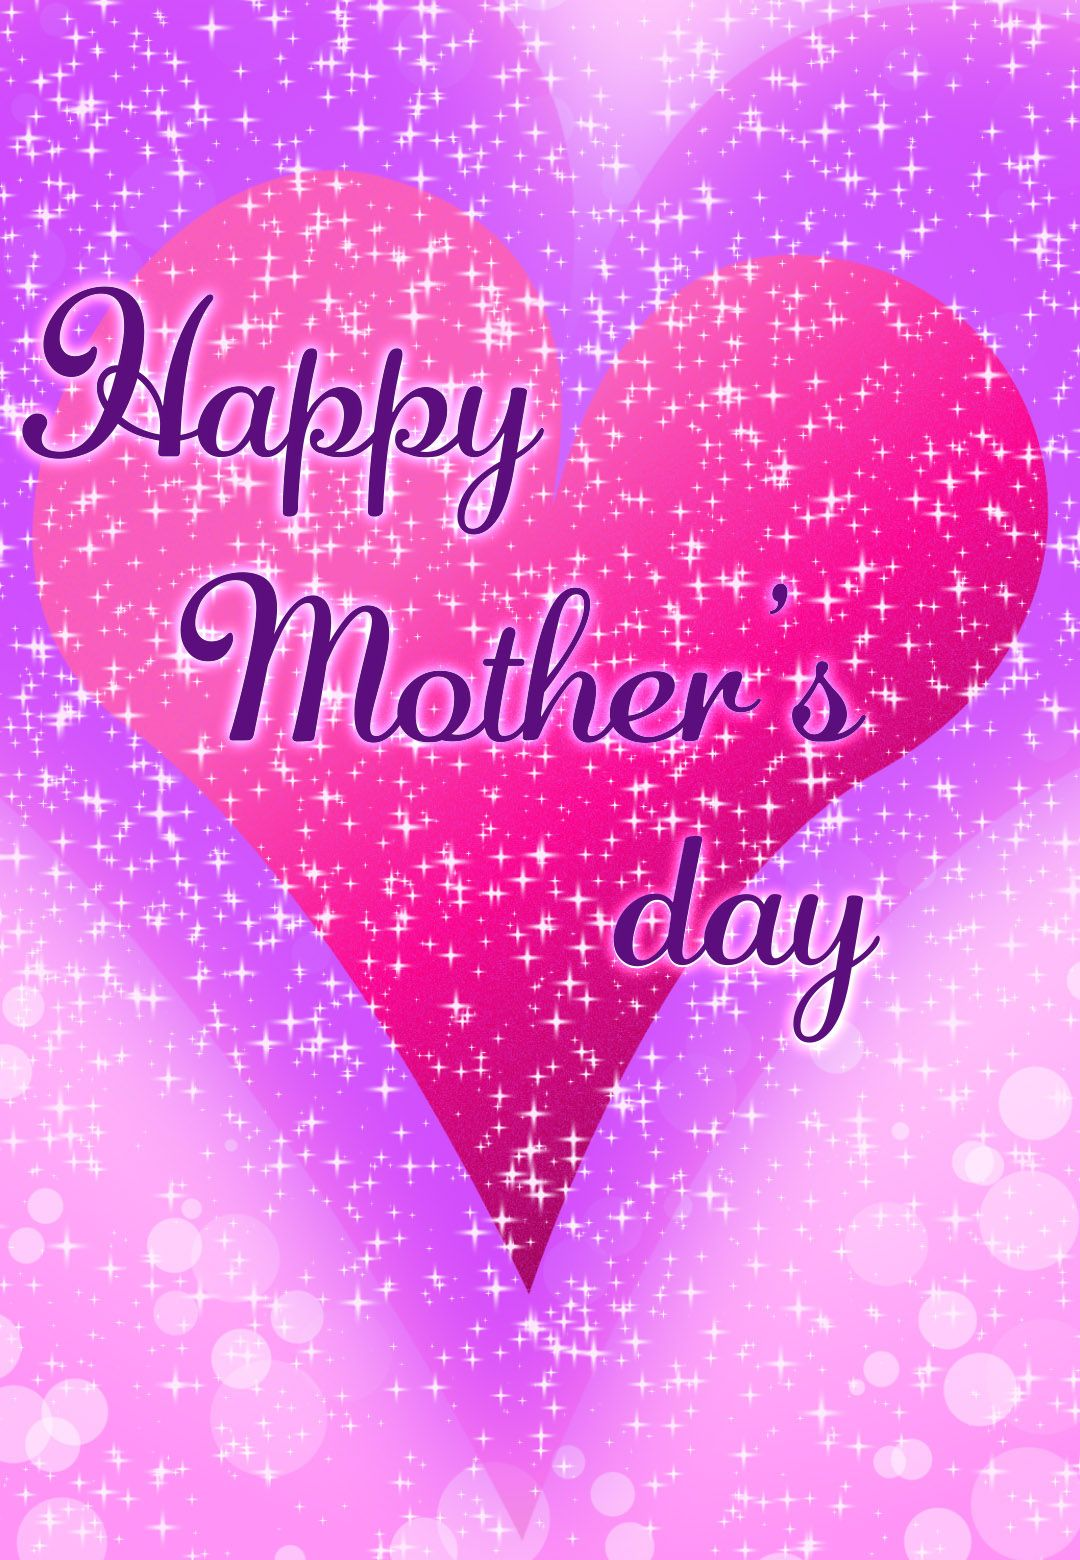 Happy Mothers Day Free Mother S Day Card Greetings Island Happy Mothers Day Pictures Happy Mothers Day Images Happy Mothers Day Messages